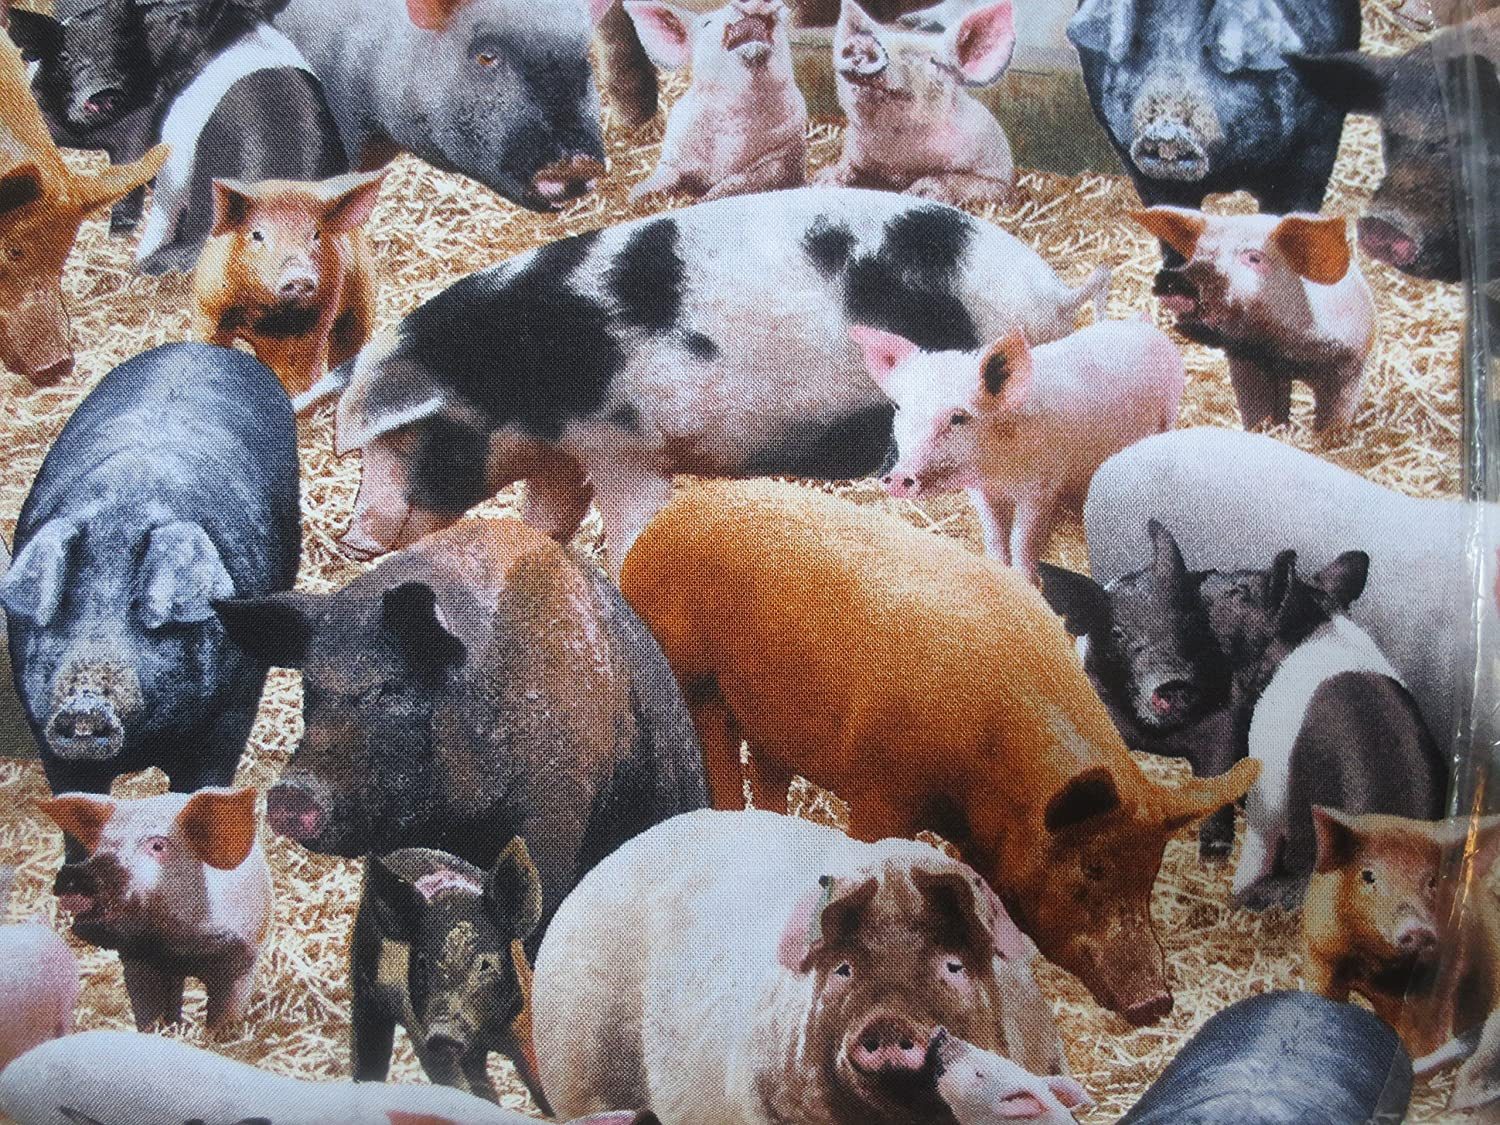 Hogs And Pigs And More Hogs and Pigs Cotton Fabric elizabeth studio 4336996033